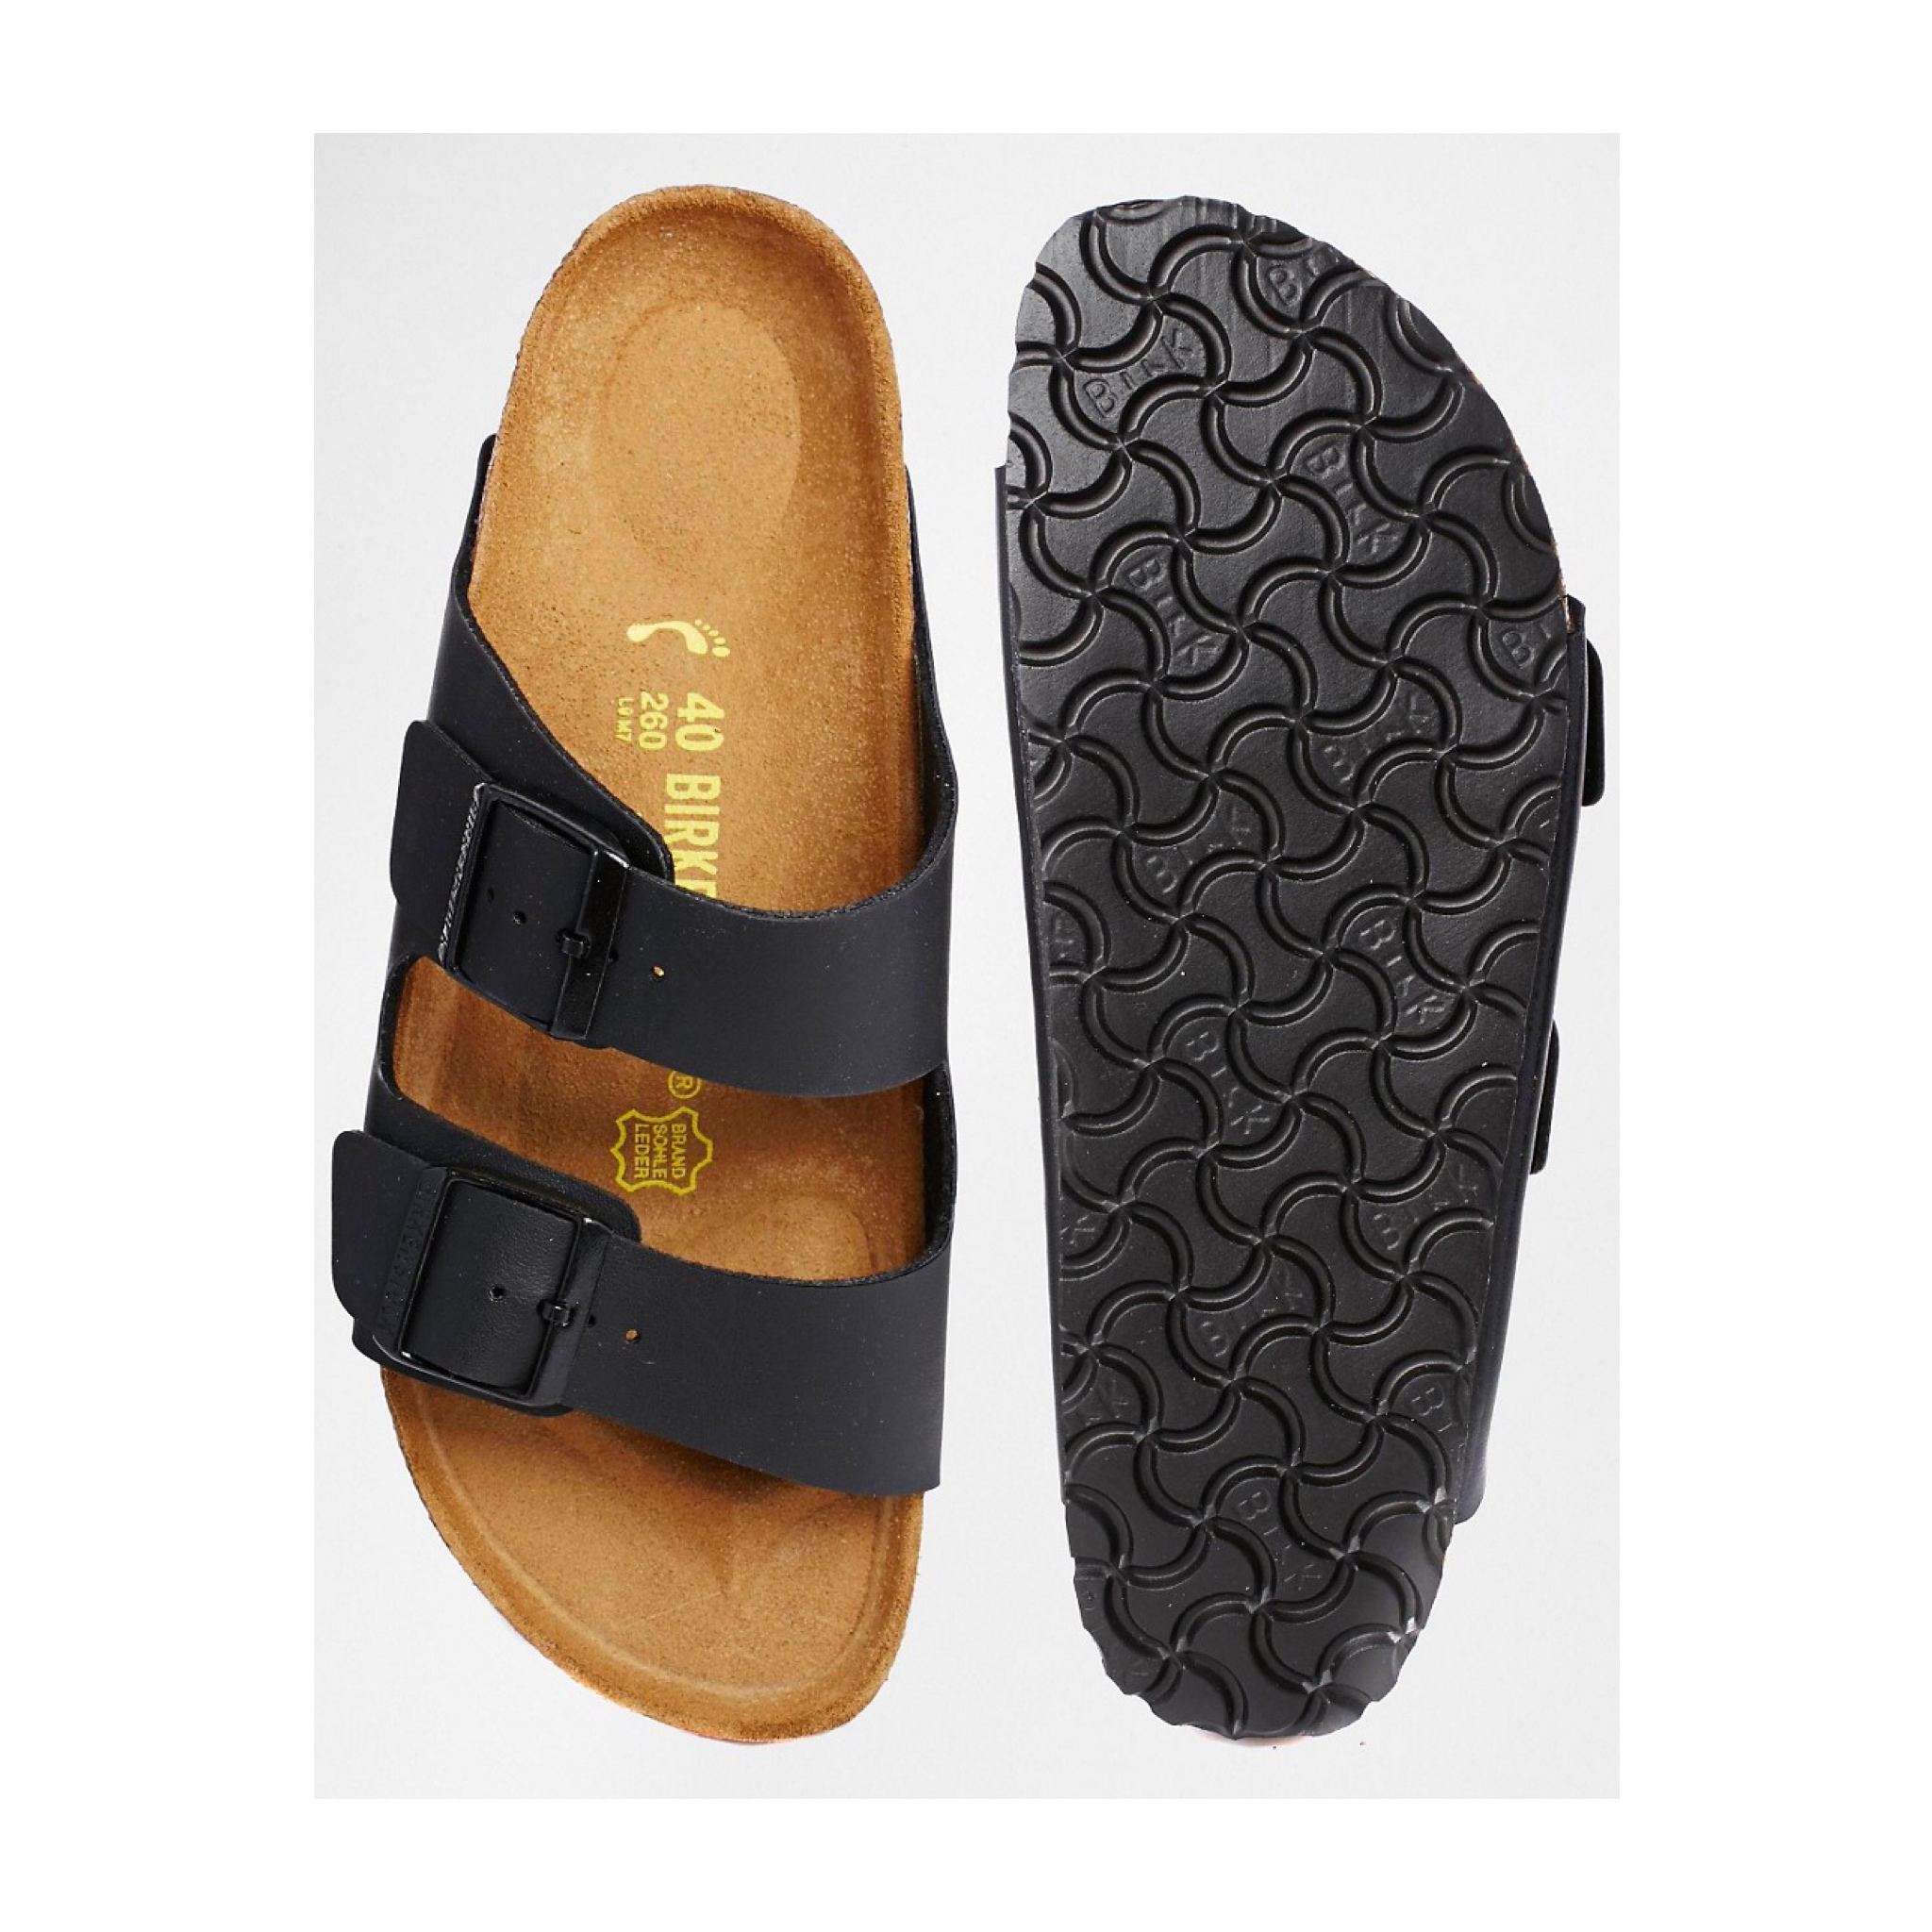 Birkenstocks ... I LOVE my Birkenstocks, the comfiest of all summer footwear! I find they come up big so I ordered size 4 / 37 euro even though I'm a size 5.5 and mine fit perfectly.